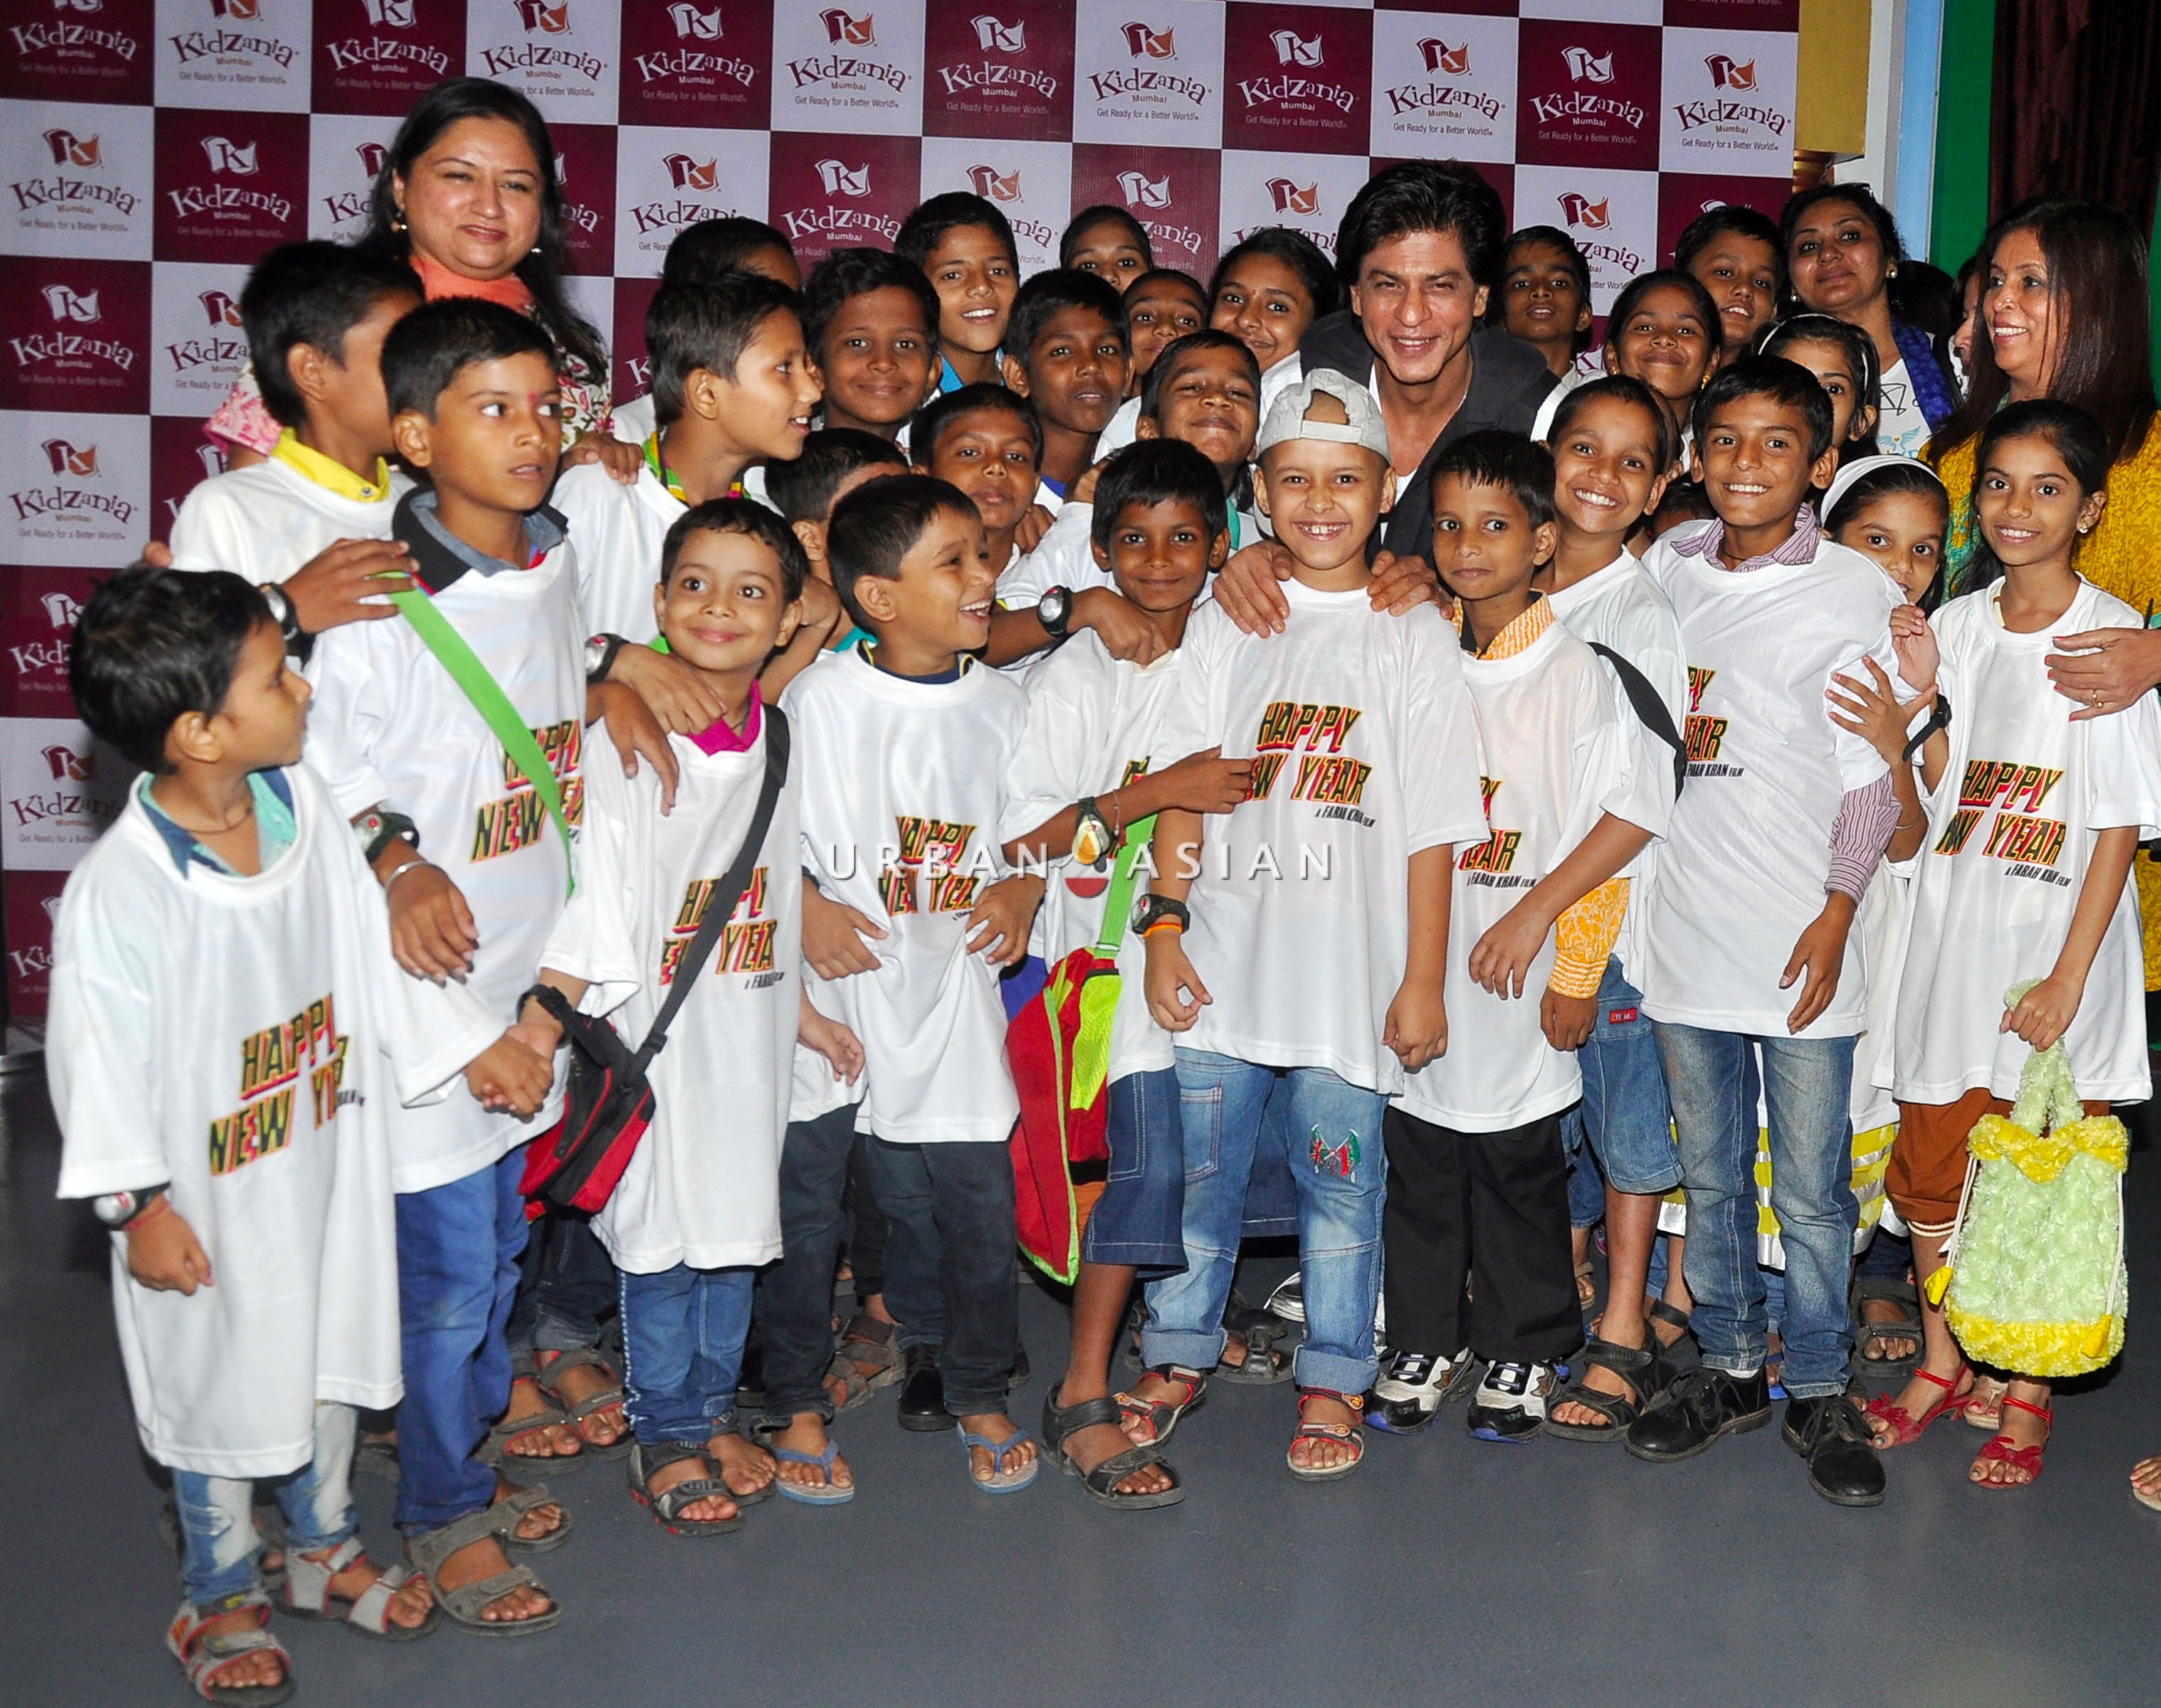 SRK WITH THE CHILDREN OF ANGEL XPRESS FOUNDATION AT KIDZANIA DSC_6430